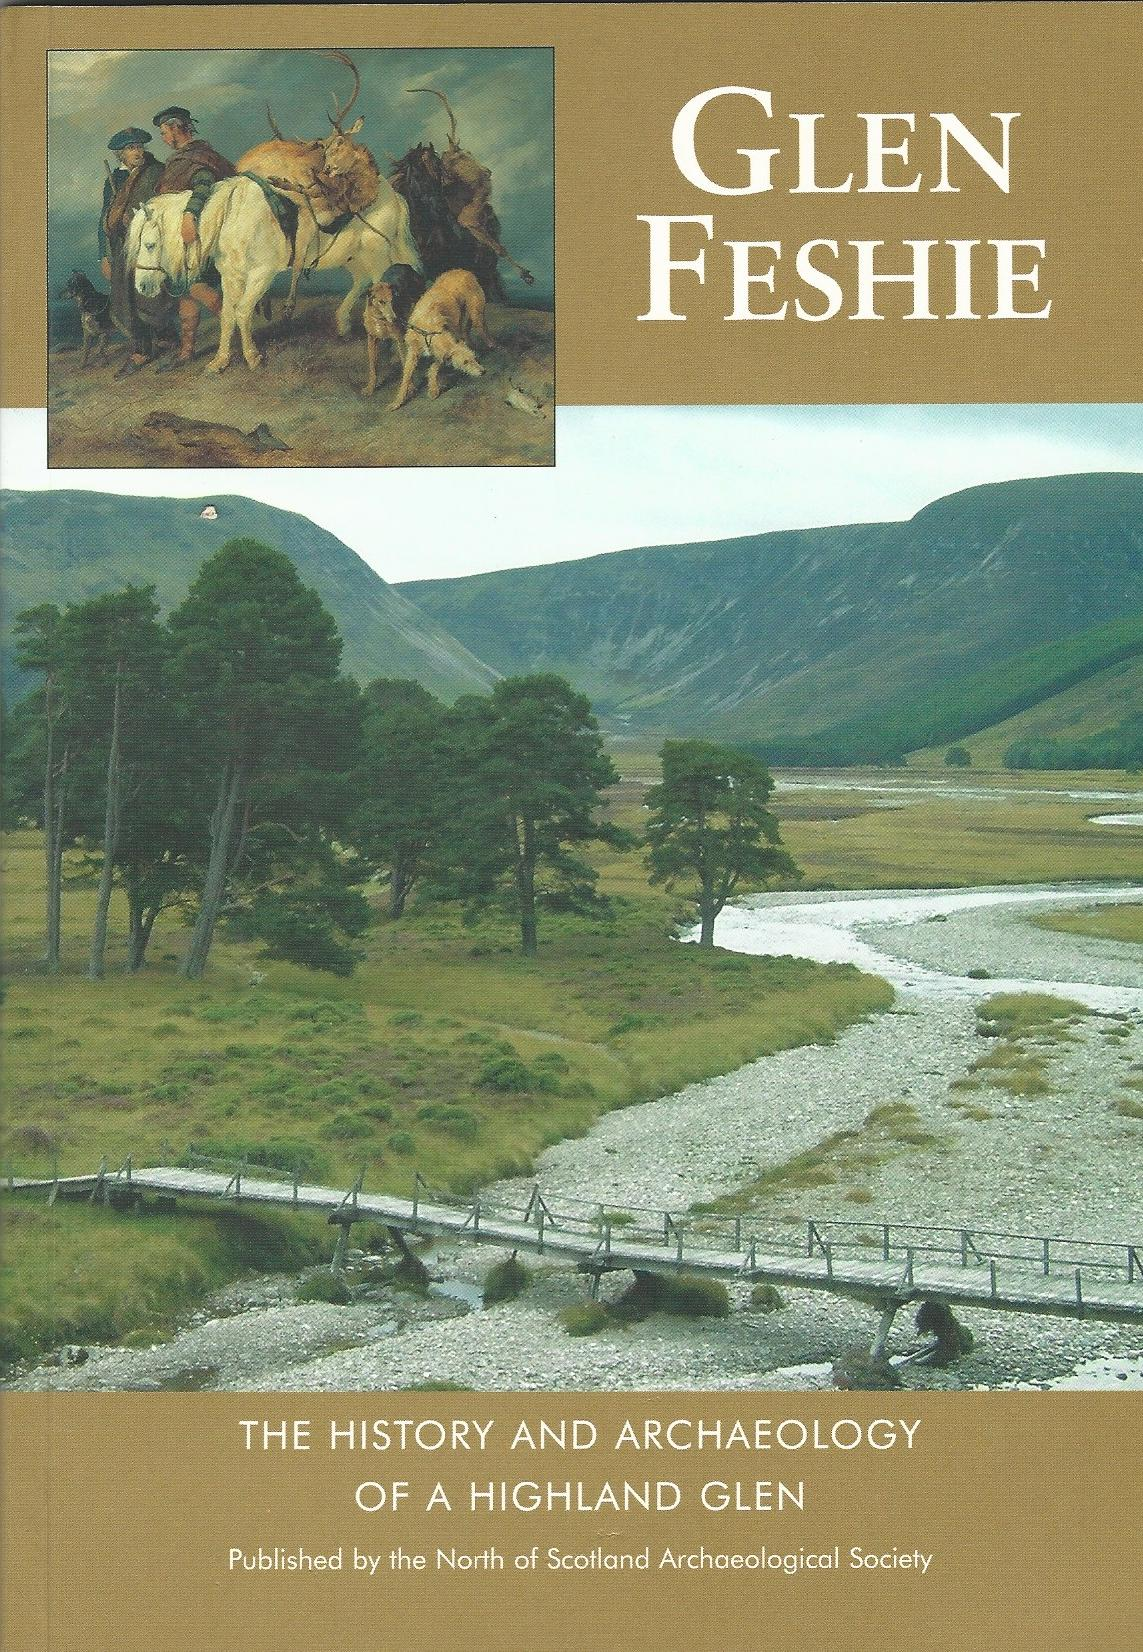 Image for Glen Feshie: The History and Archaeology of a Highland Glen